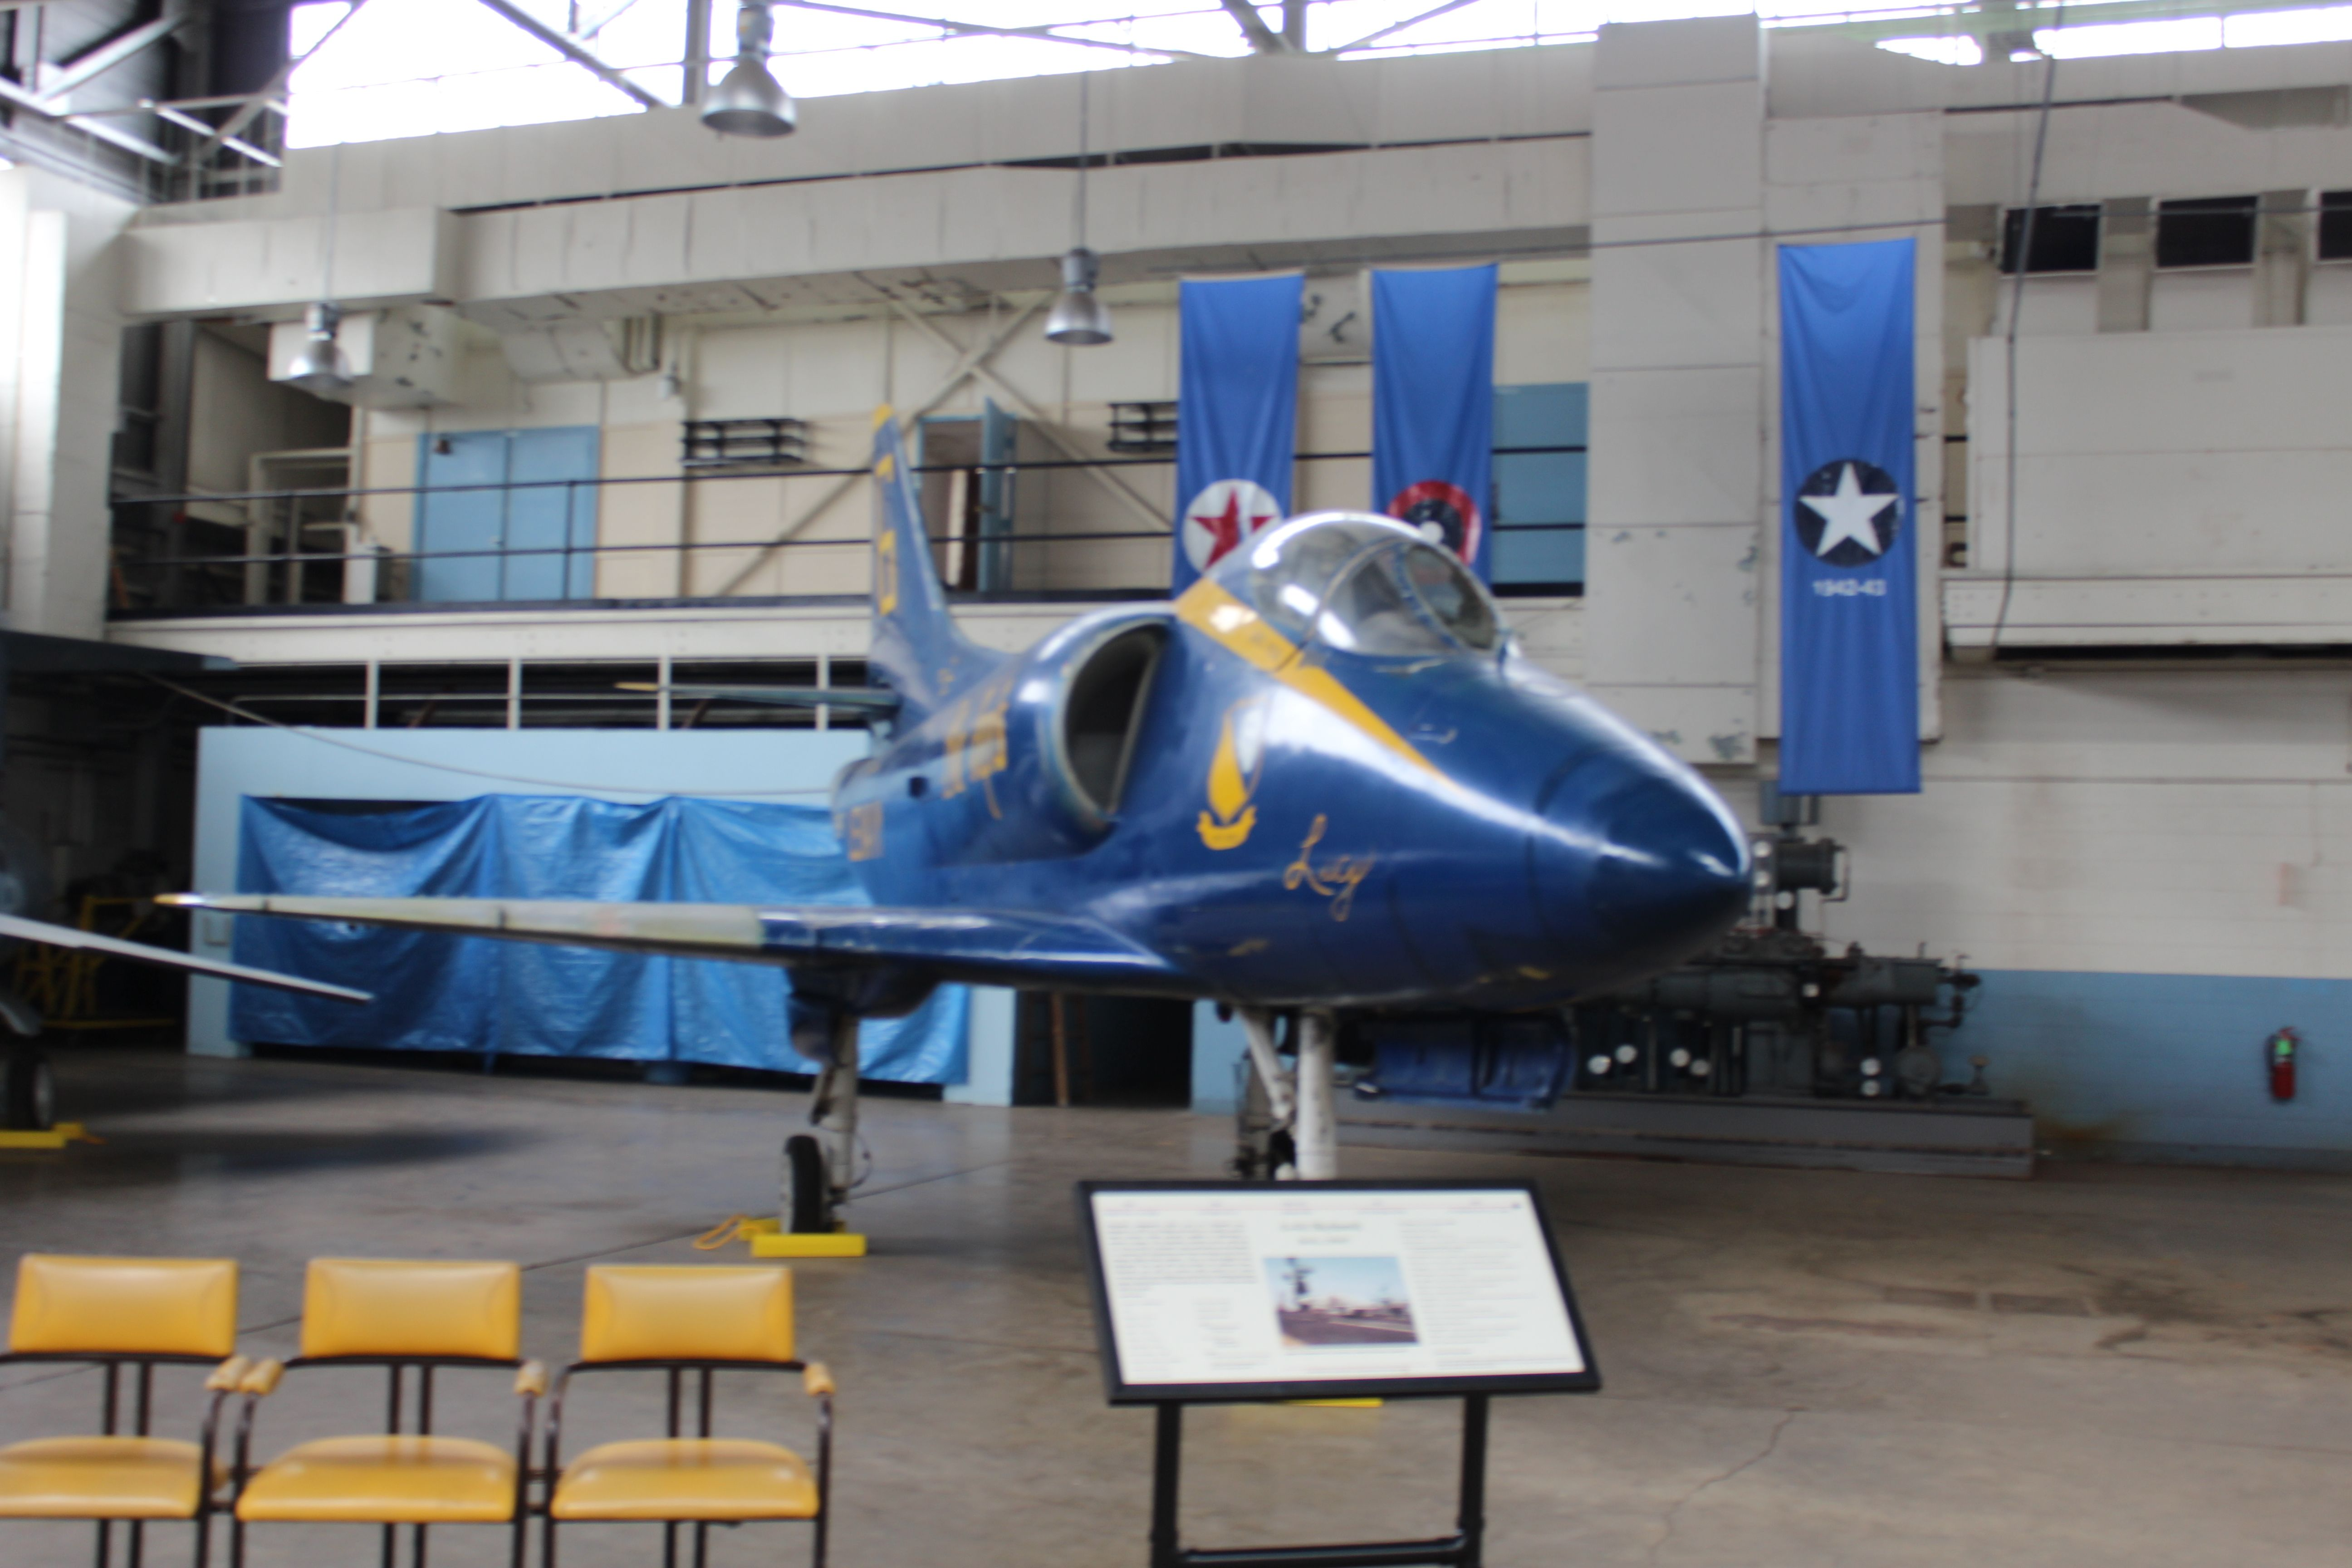 Pin by Christopher Treadway on Chanute Air Museum in